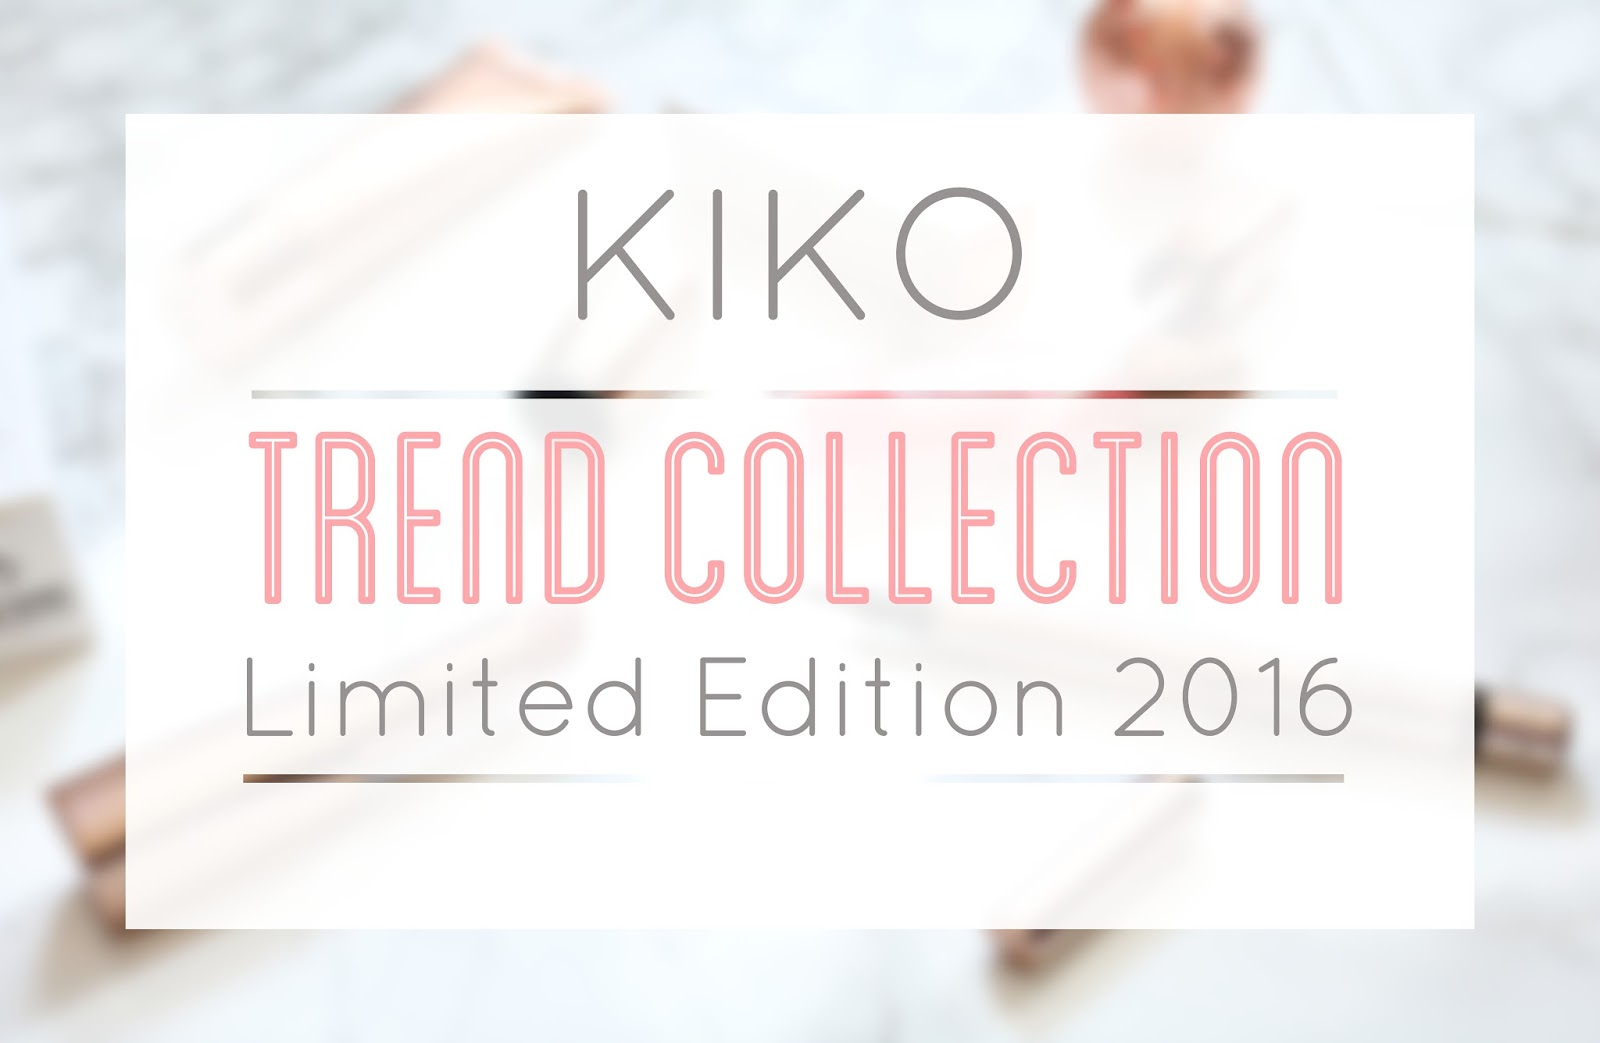 Kiko Trend Collection